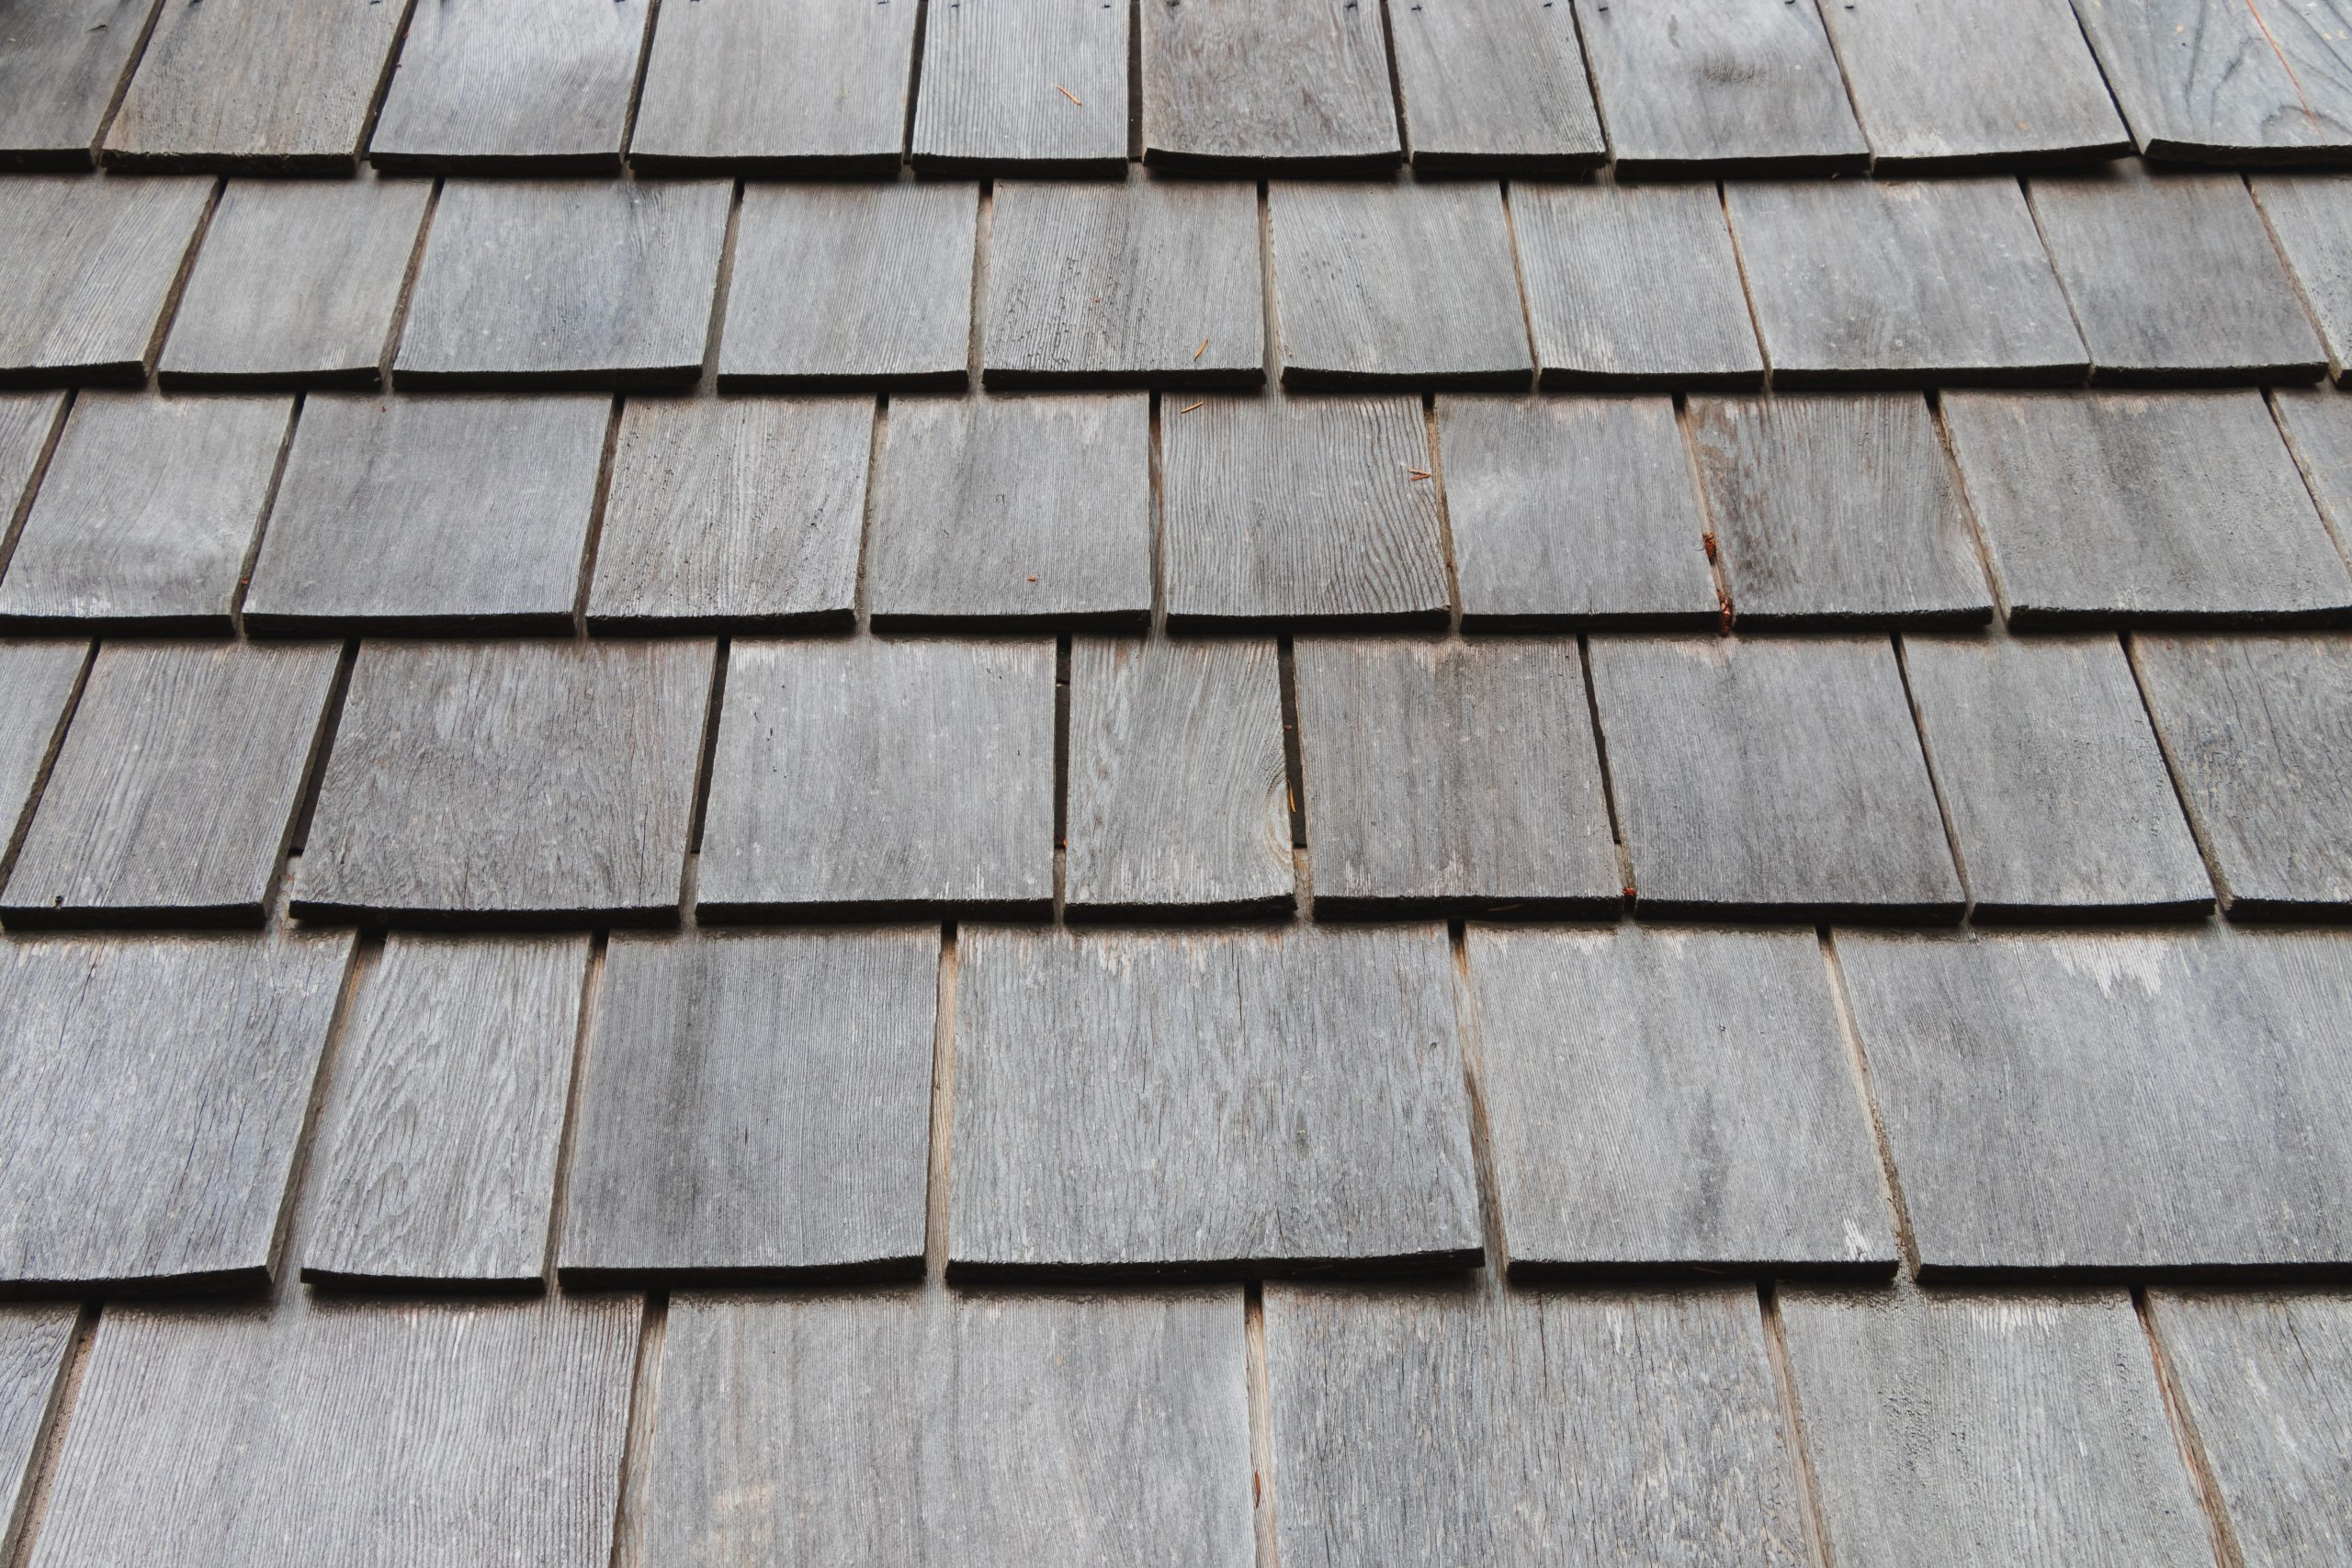 The image shows some grey roof tiles.